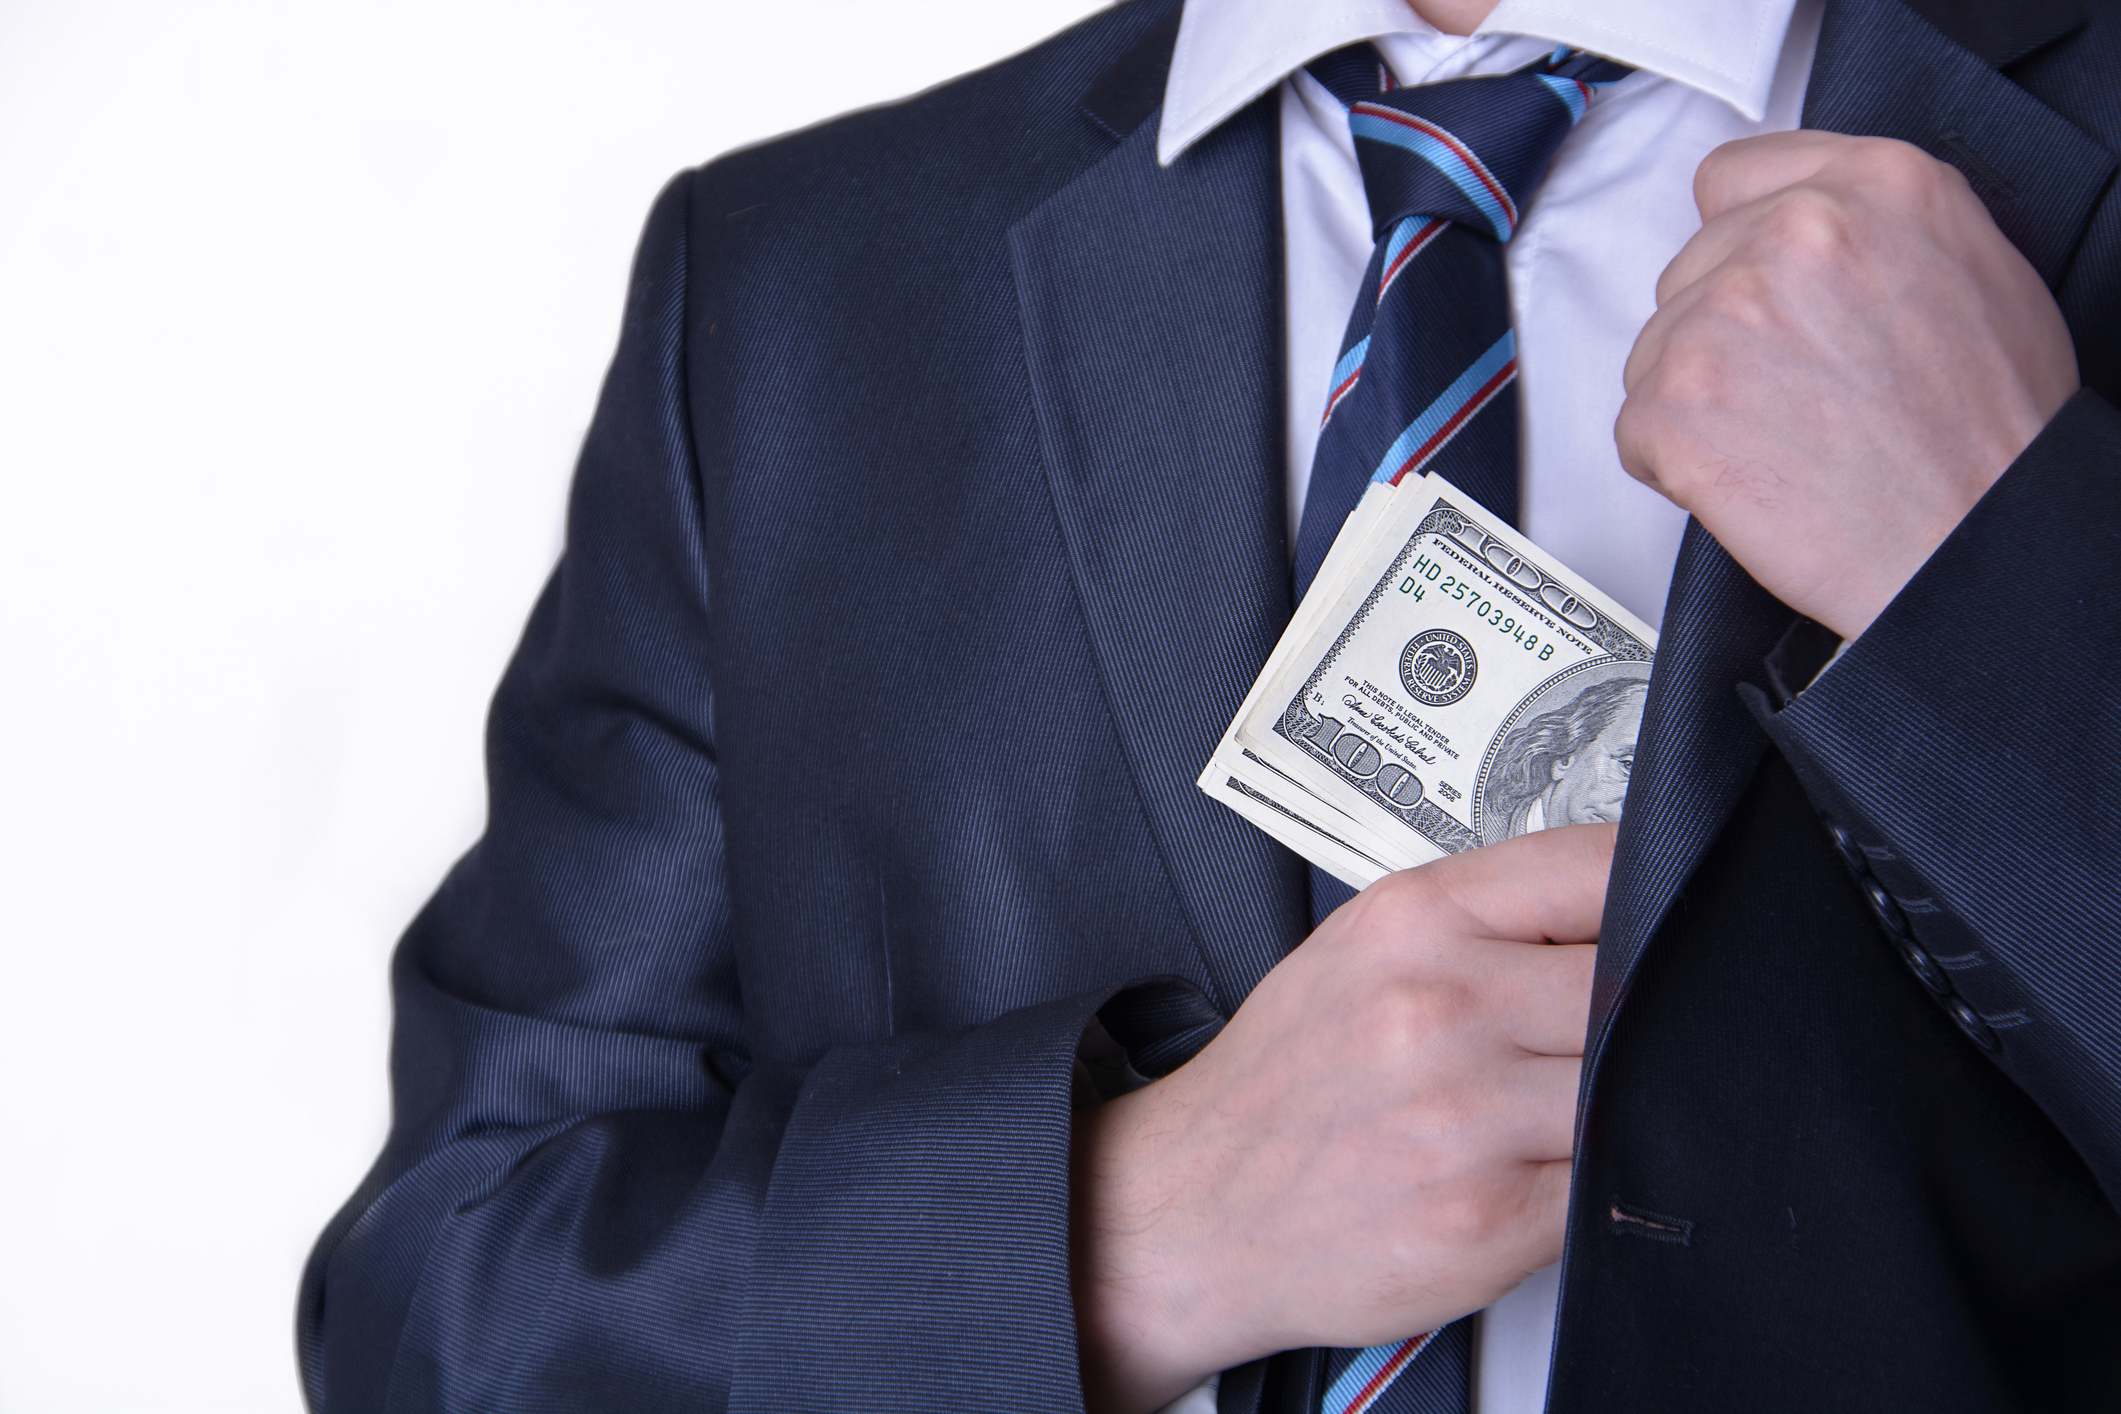 SEC Charges Pennsylvania Insurance Agent with Running Ponzi Scheme